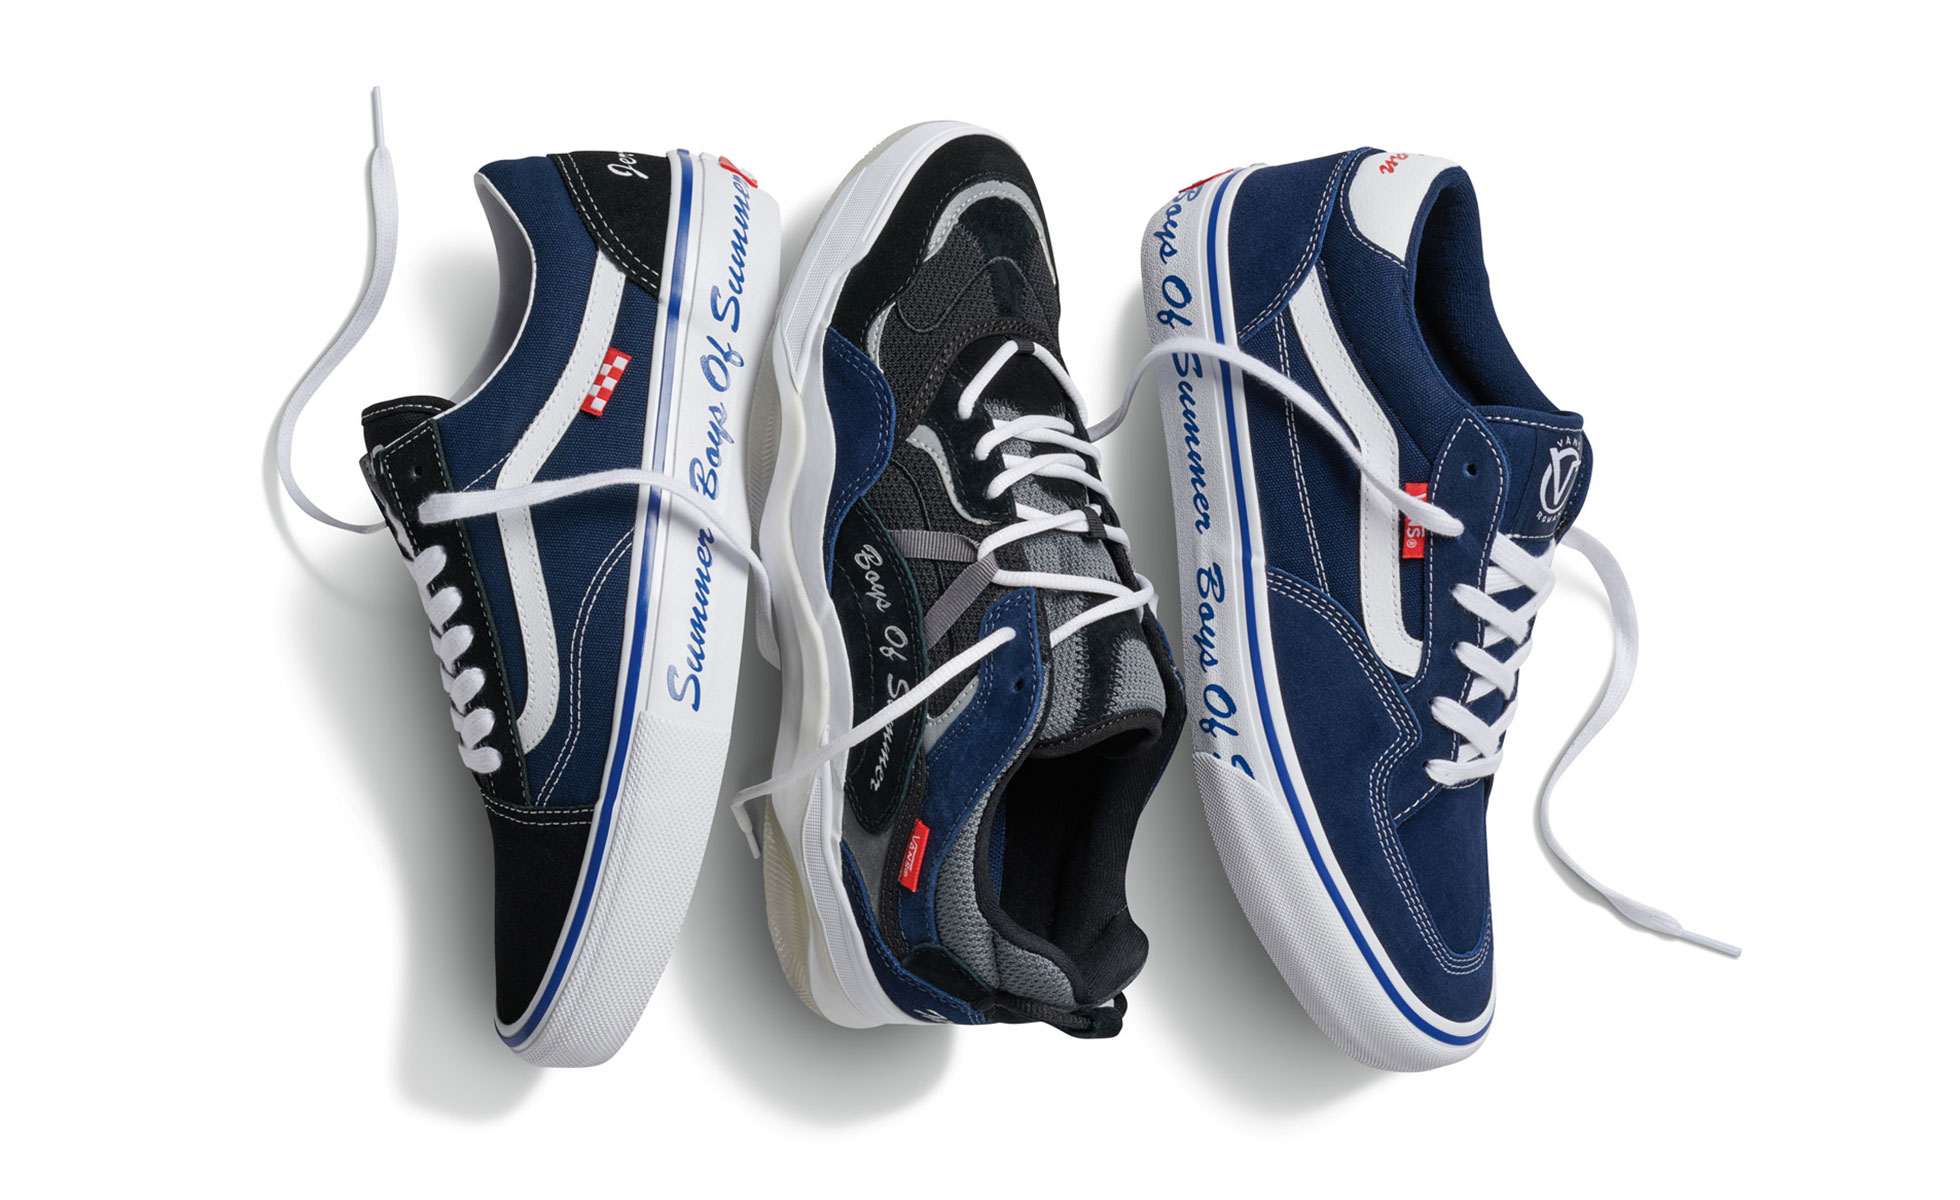 Vans x Boys of Summer Collection